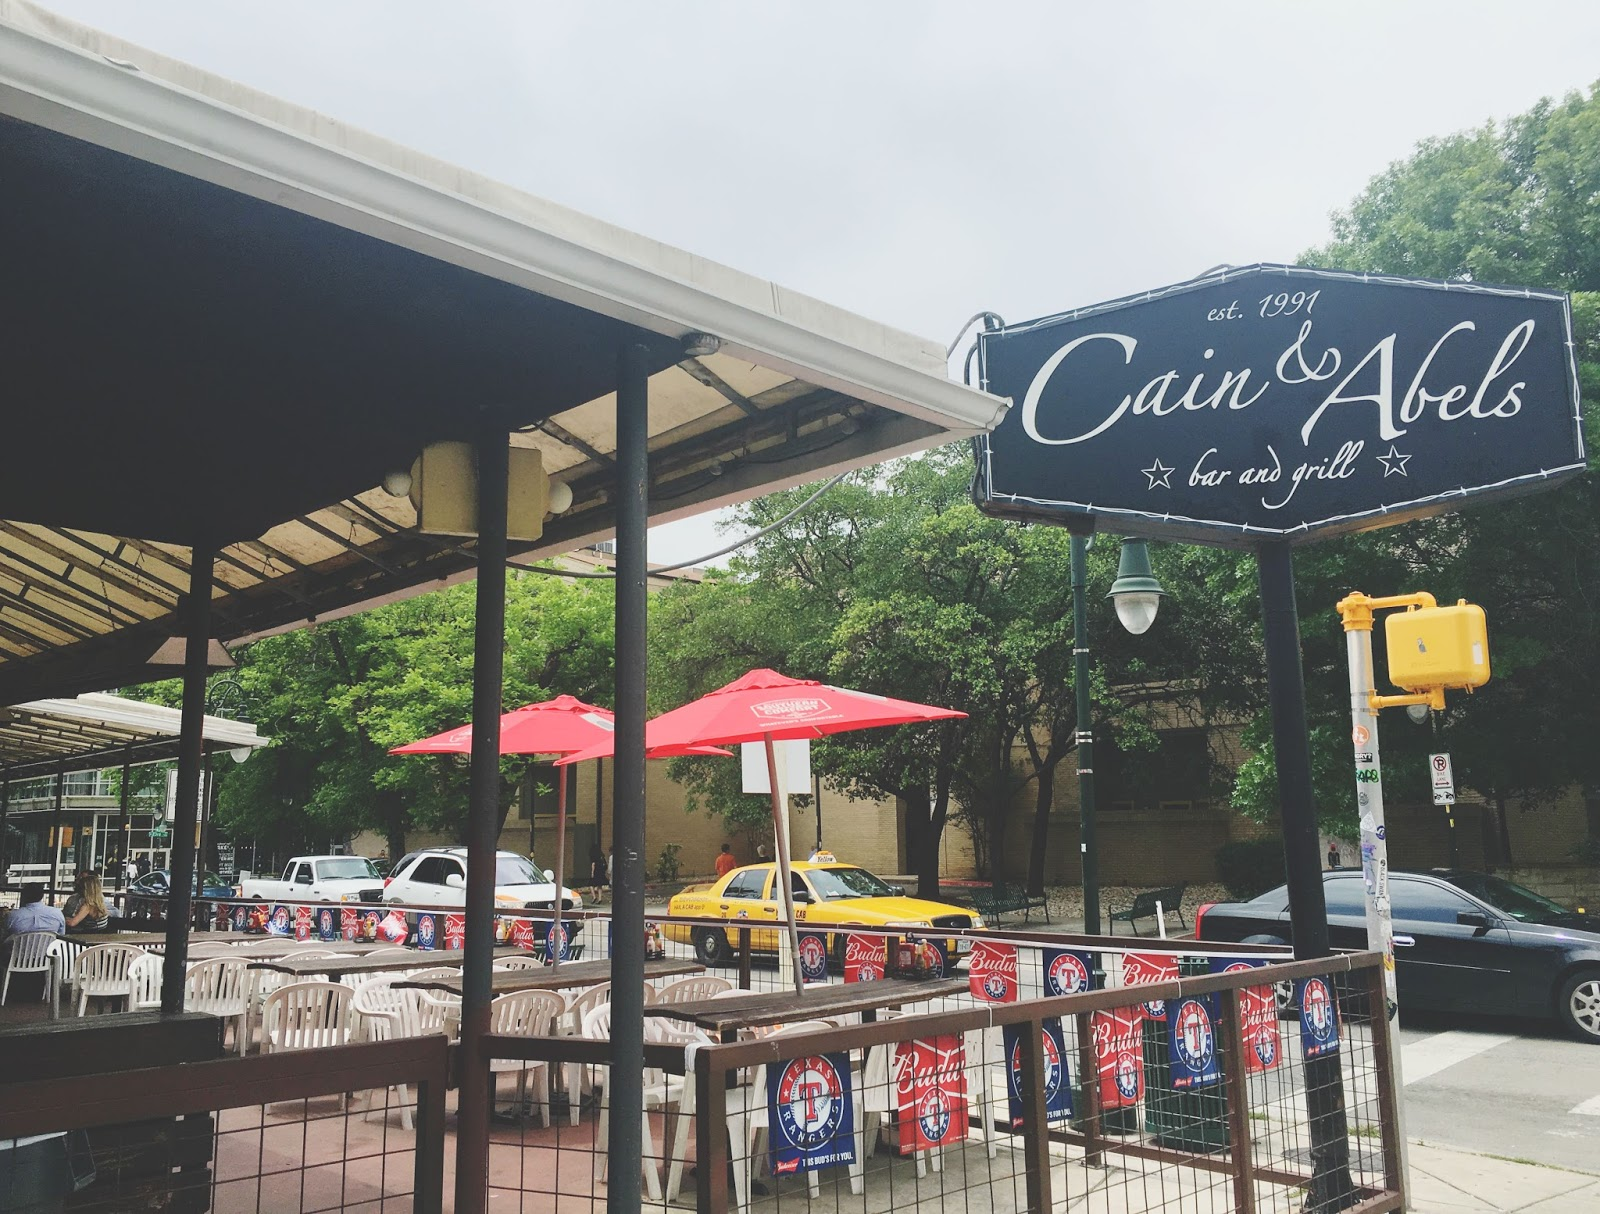 Cain & Abel's - a restaurant/bar in Austin, Texas